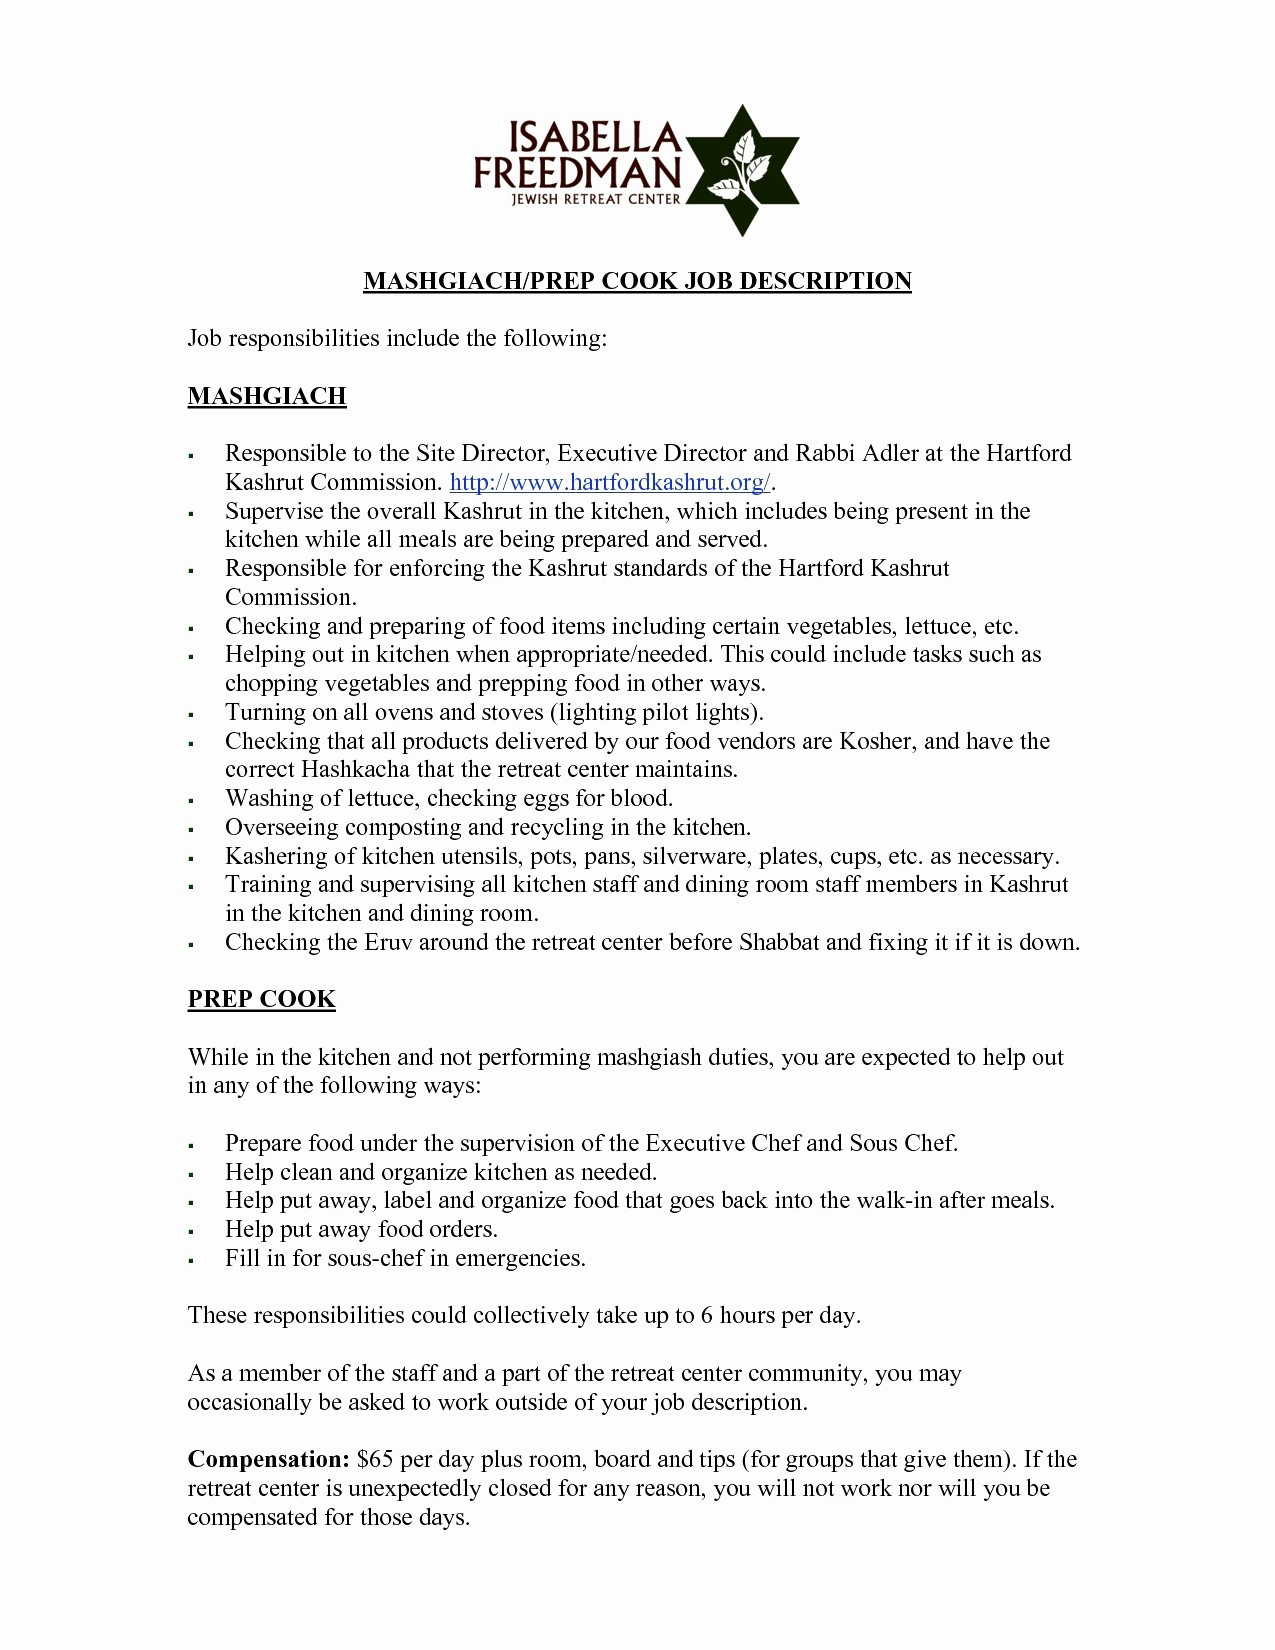 Clinical Trial Close Out Letter Template - Resume and Cv Awesome Cv Resume Template Inspirational Resume and